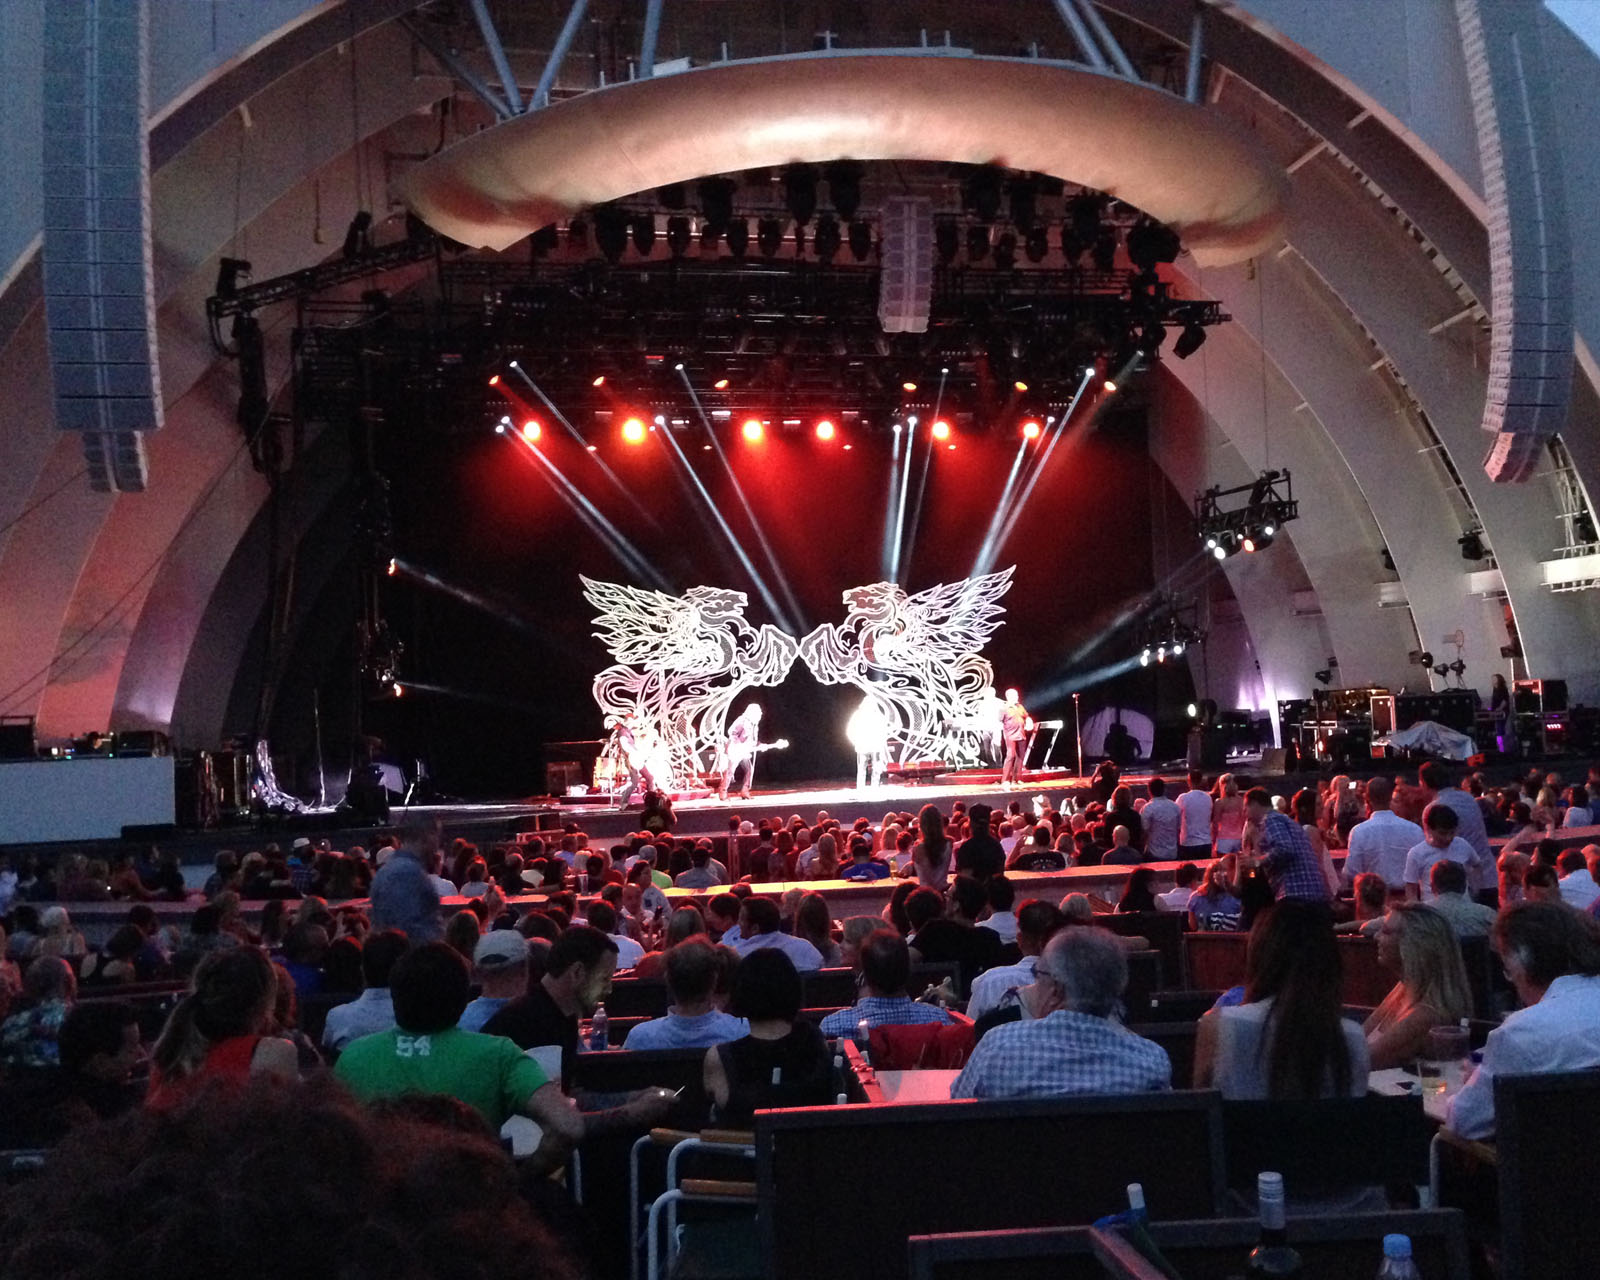 Pegasus sculptures were designed to be able to play in the daylight and help give focus to the band in huge concert venues such as the Hollywood Bowl seen in this image.